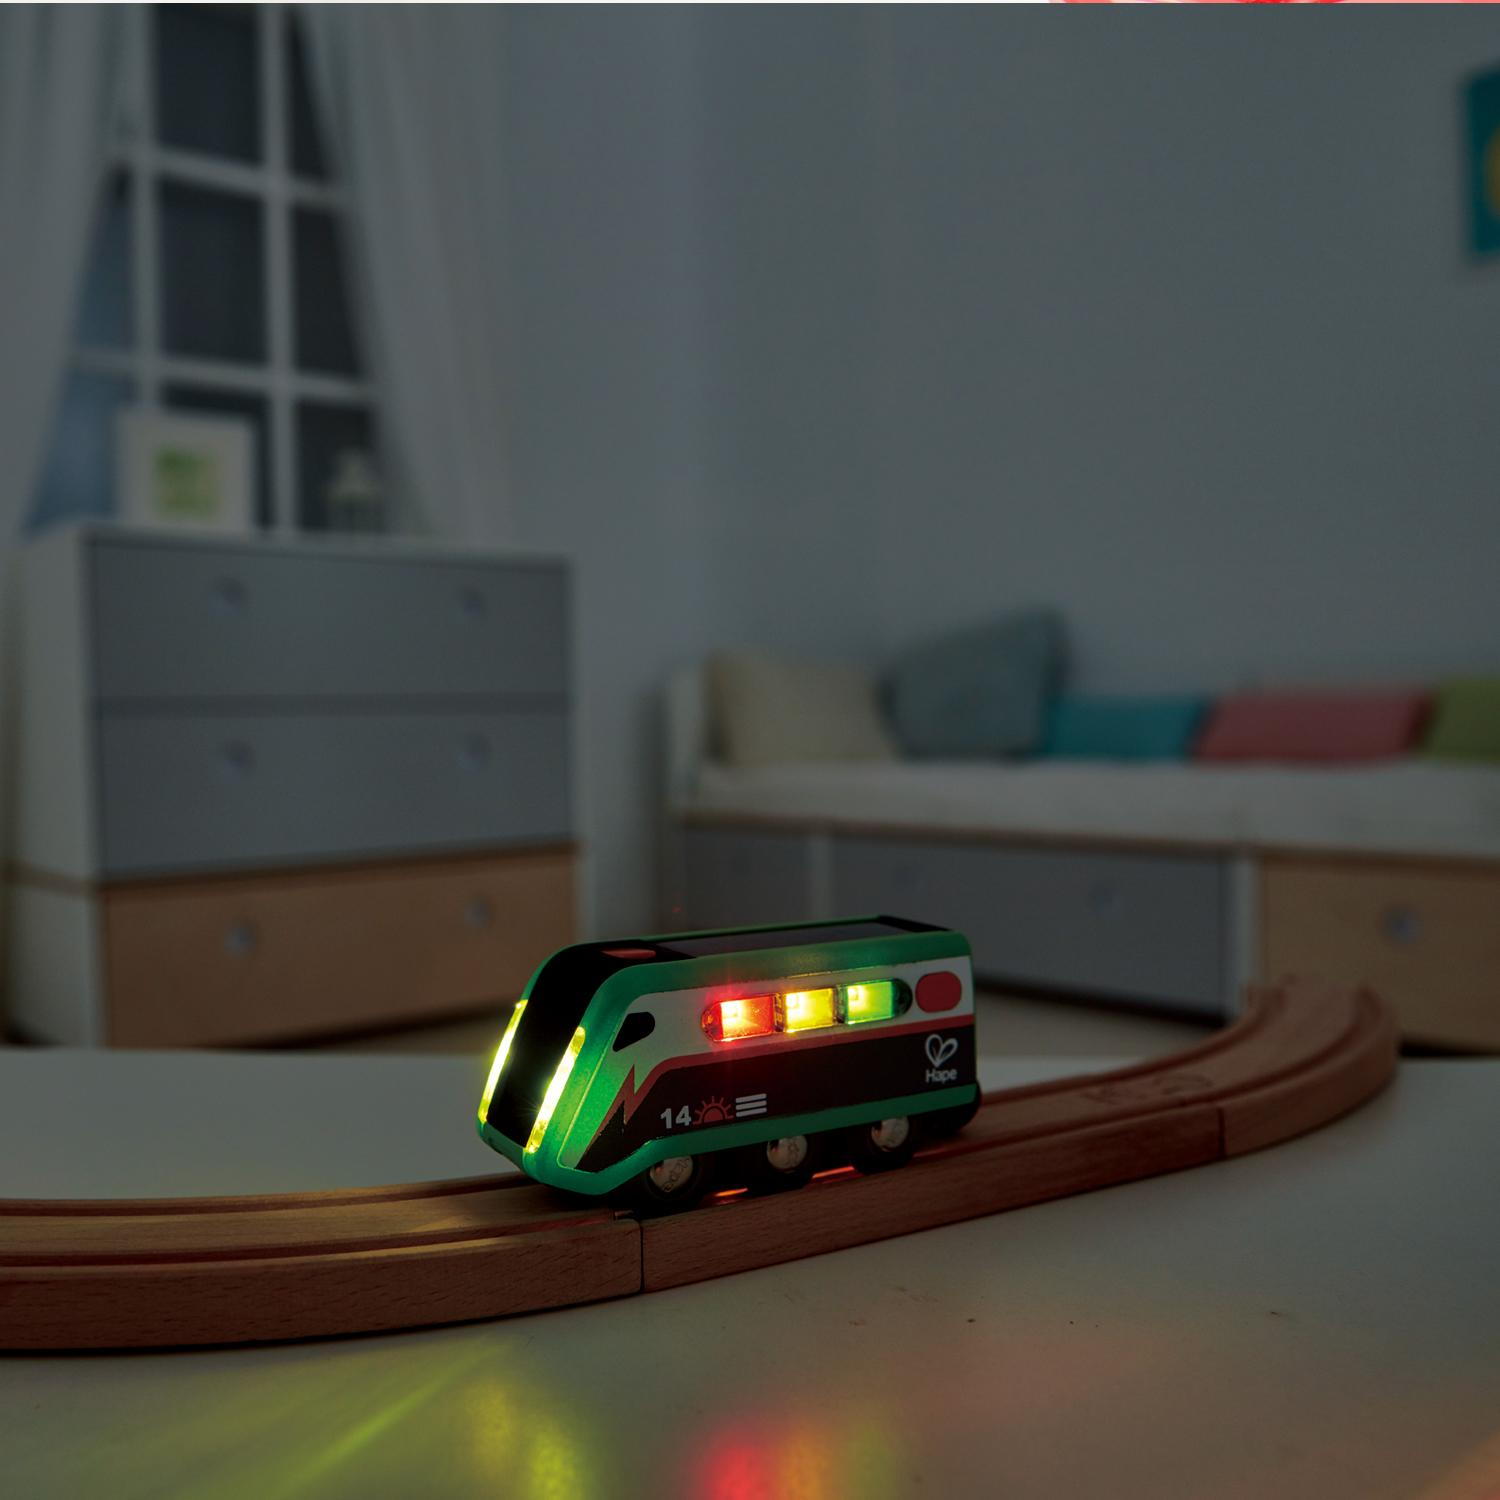 Solar-powered engine with lights on going round on a train track in a dimmed room.